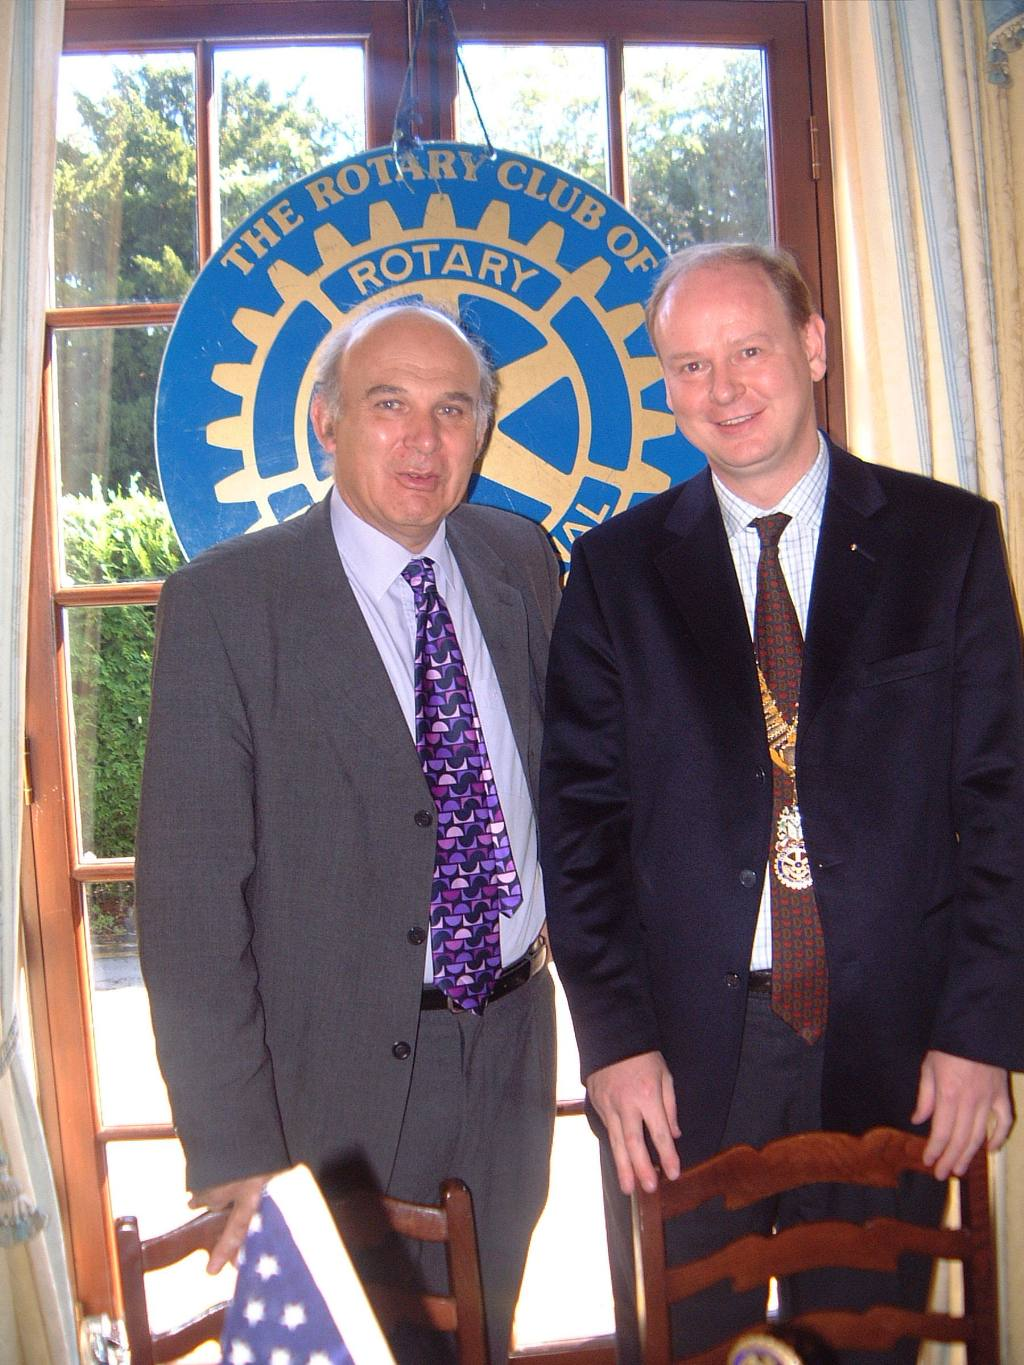 Club Members - Twickenham MP, Dr Vincent Cable, is an honorary member of the club.